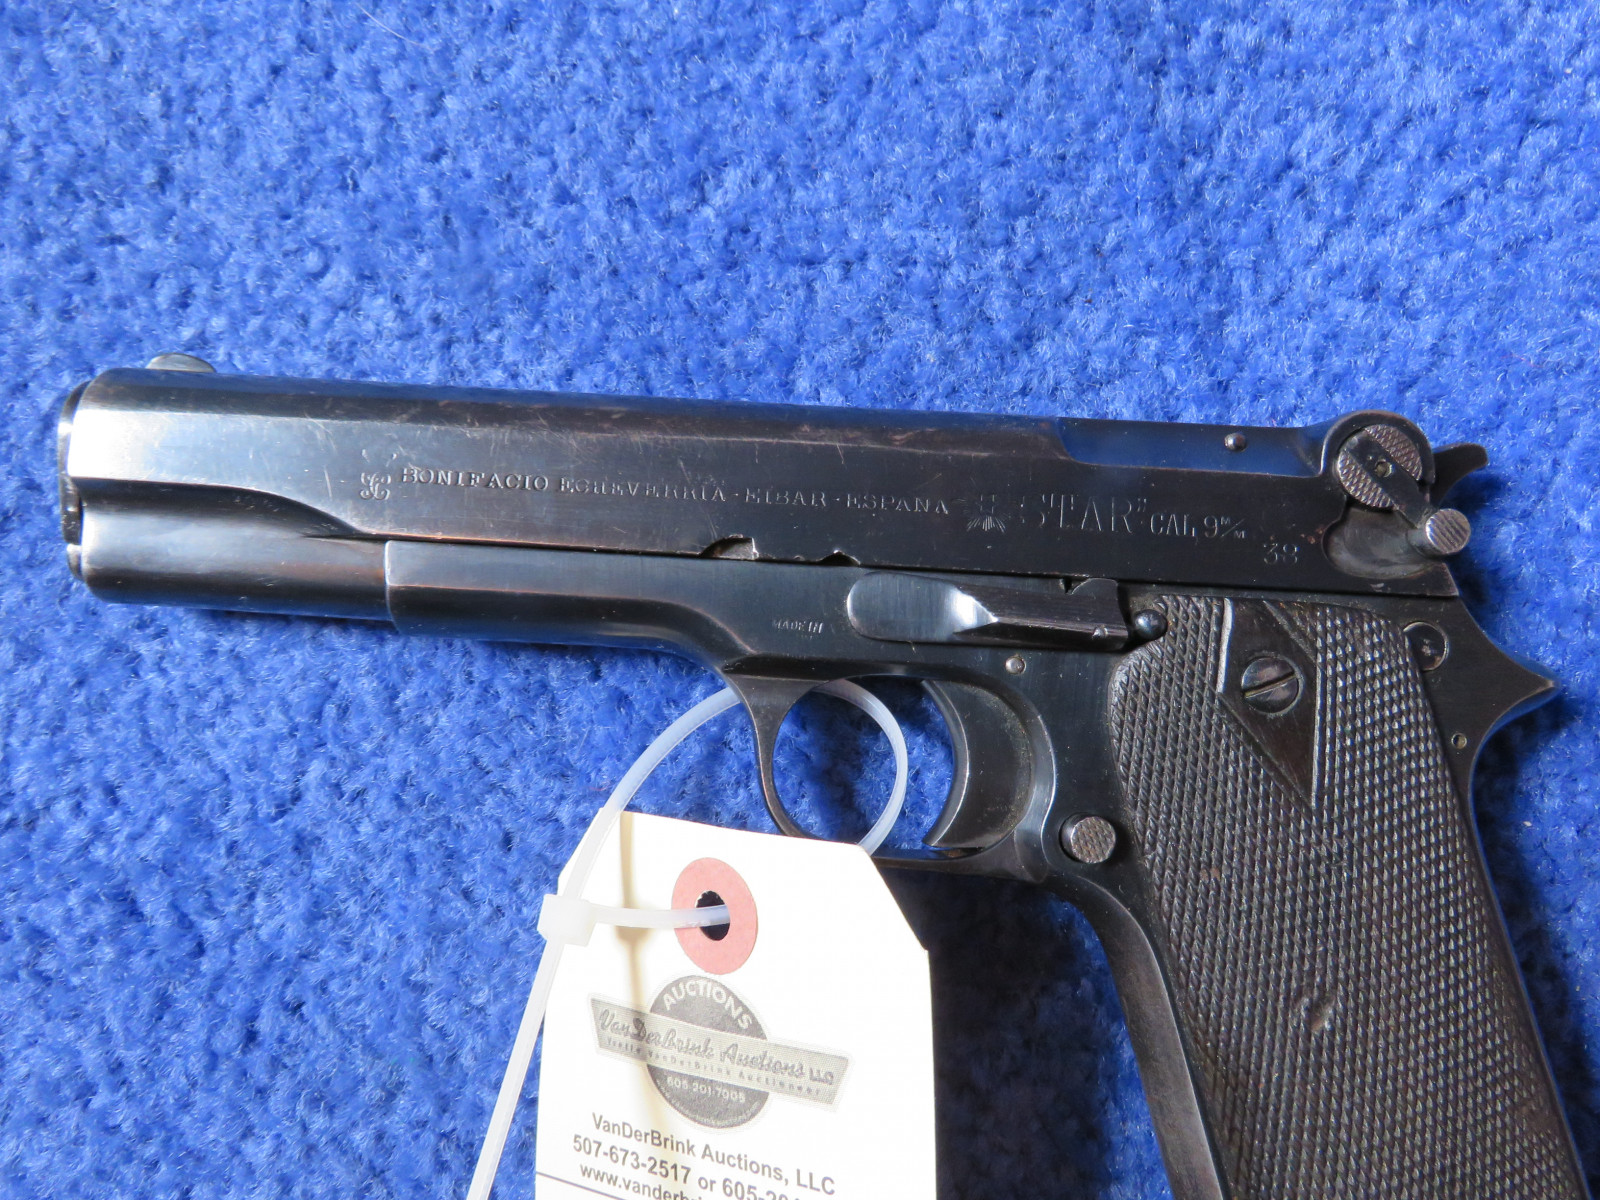 1921 Bonifacio Star 9MM Semi-Automatic Handgun - Image 3